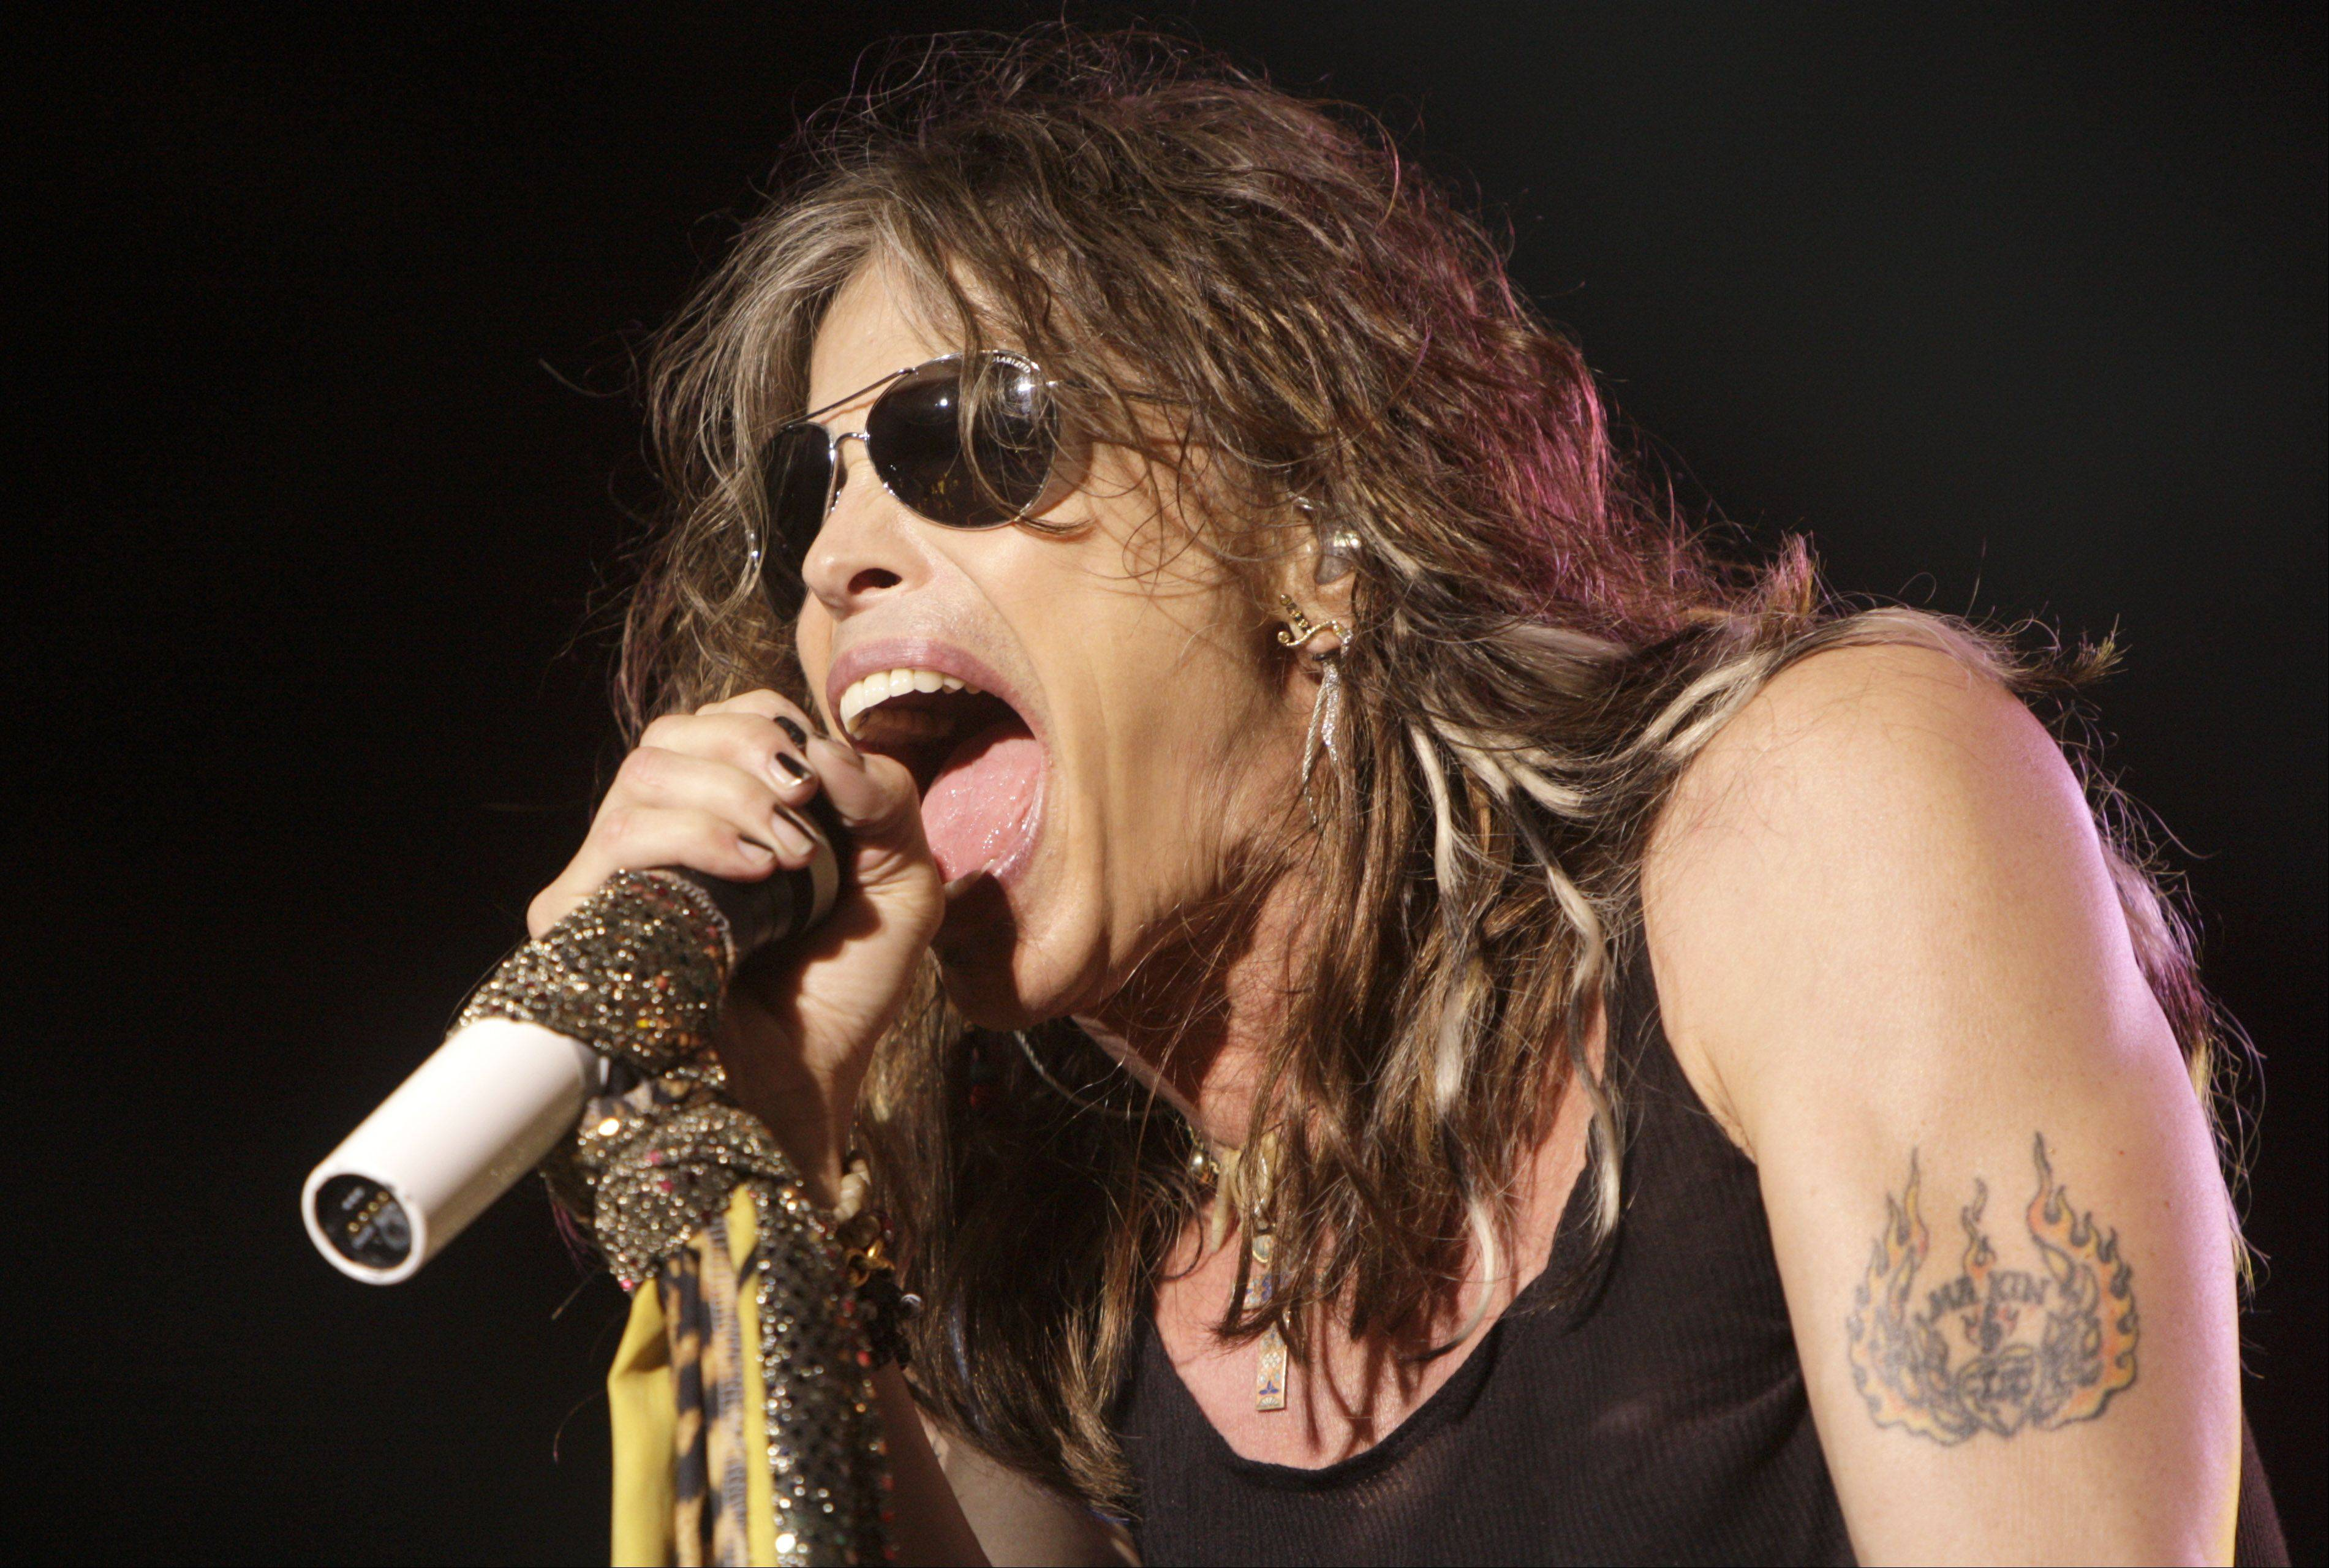 The future is looking bleak for a celebrity privacy bill in Hawaii known as the Steven Tyler Act.The proposal pushed by the Aerosmith lead singer would allow people to sue others who take photos or videos of their private moments.